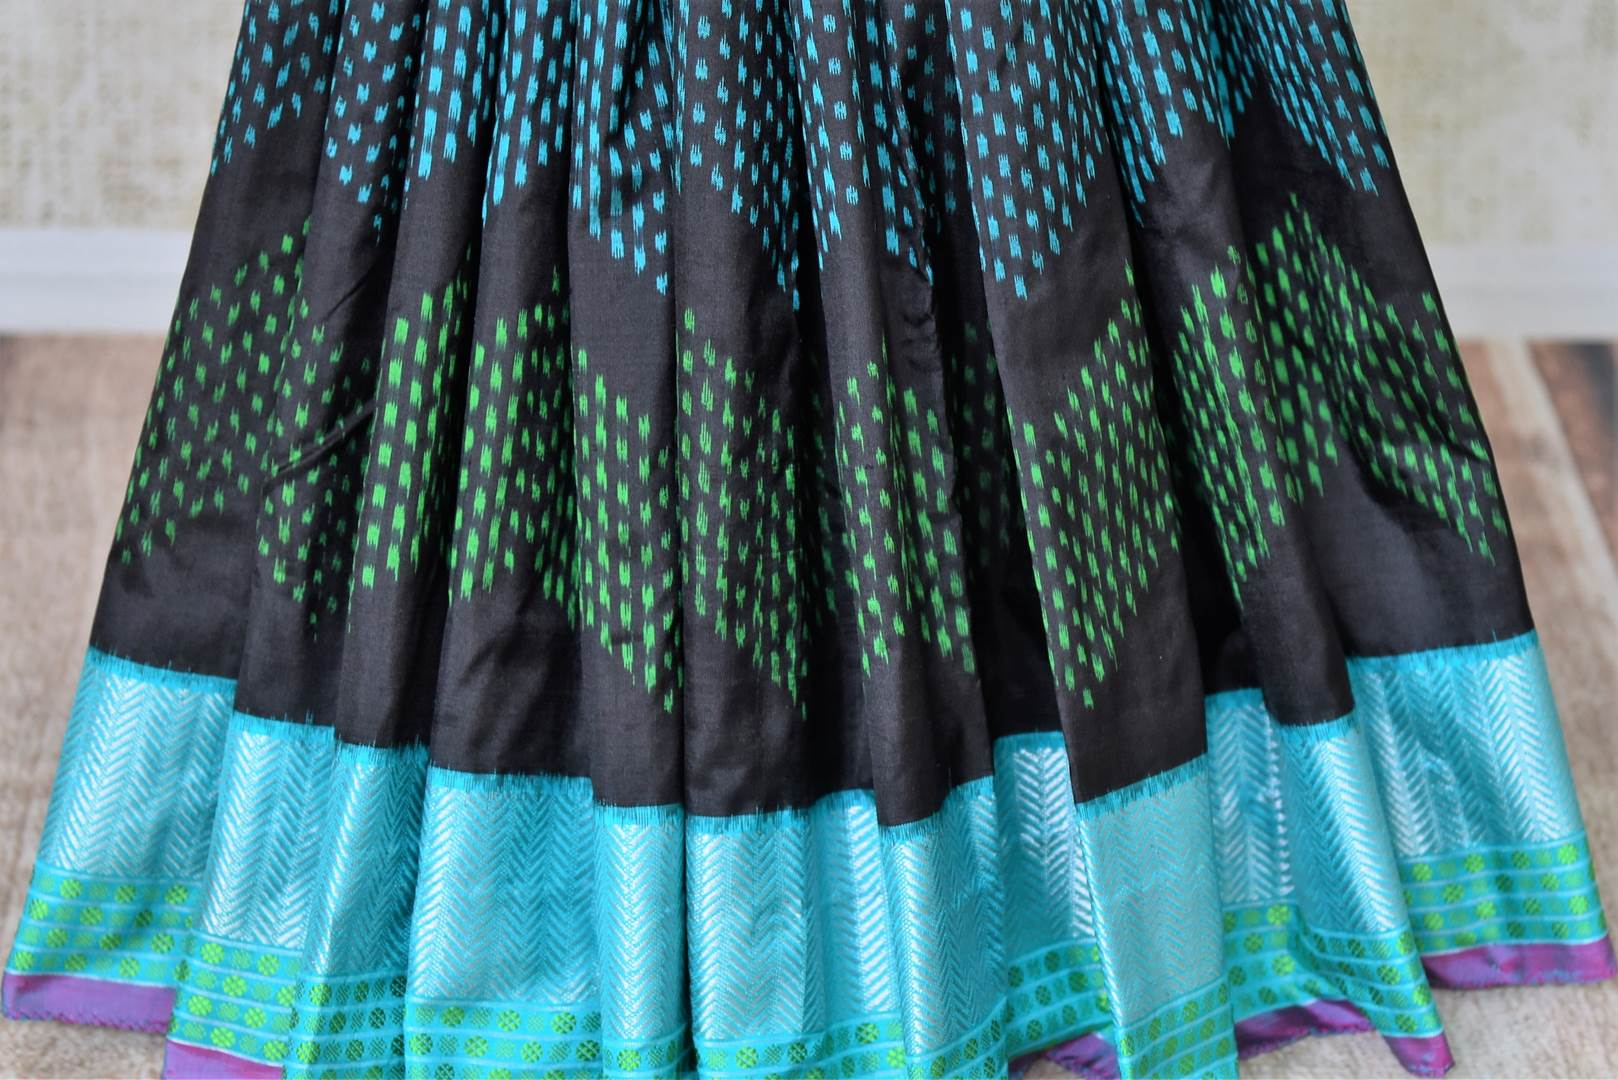 Shop elegant black ikat silk sari with blue zari border online in USA from Pure Elegance. Be occasion ready always with a range of beautiful designer saris, pure silk sarees, handloom saris, Kanchipuram sarees available at our Indian fashion store in USA. Grab your favorite pieces now also available at our online store.-pleat